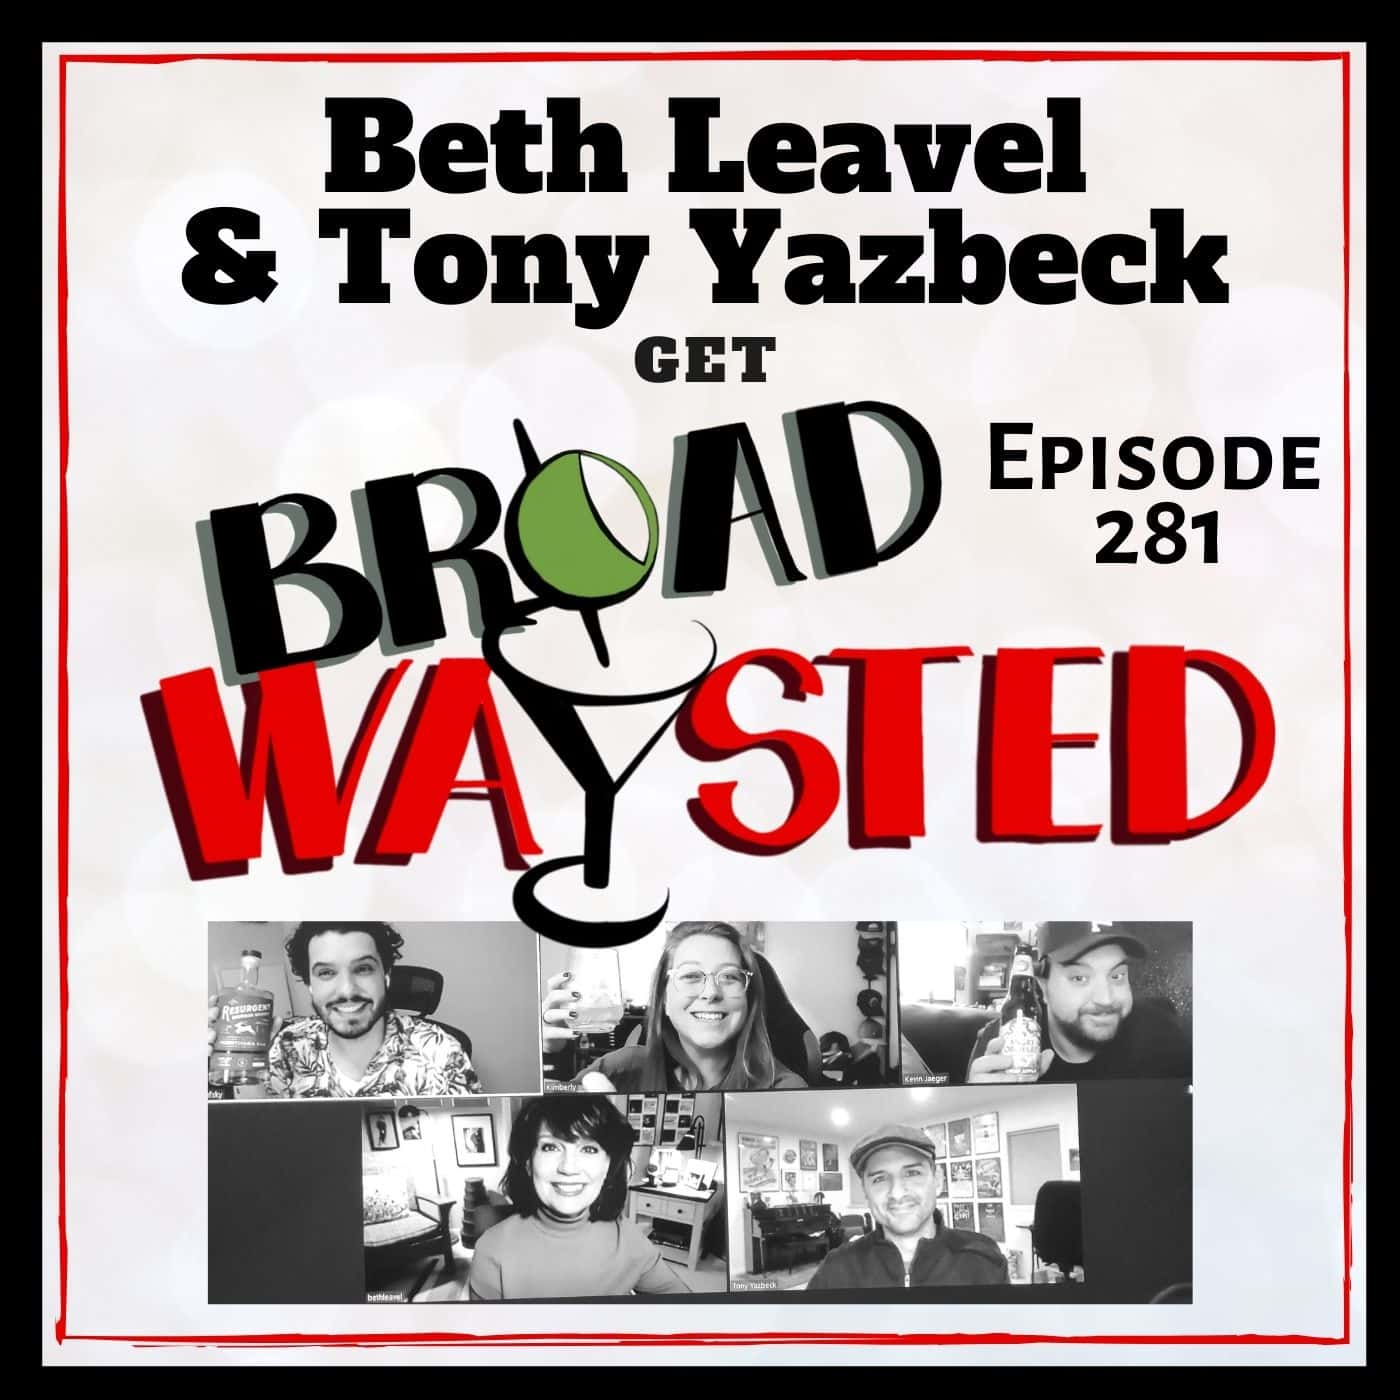 Episode 281: Beth Leavel and Tony Yazbeck get Broadwaysted!